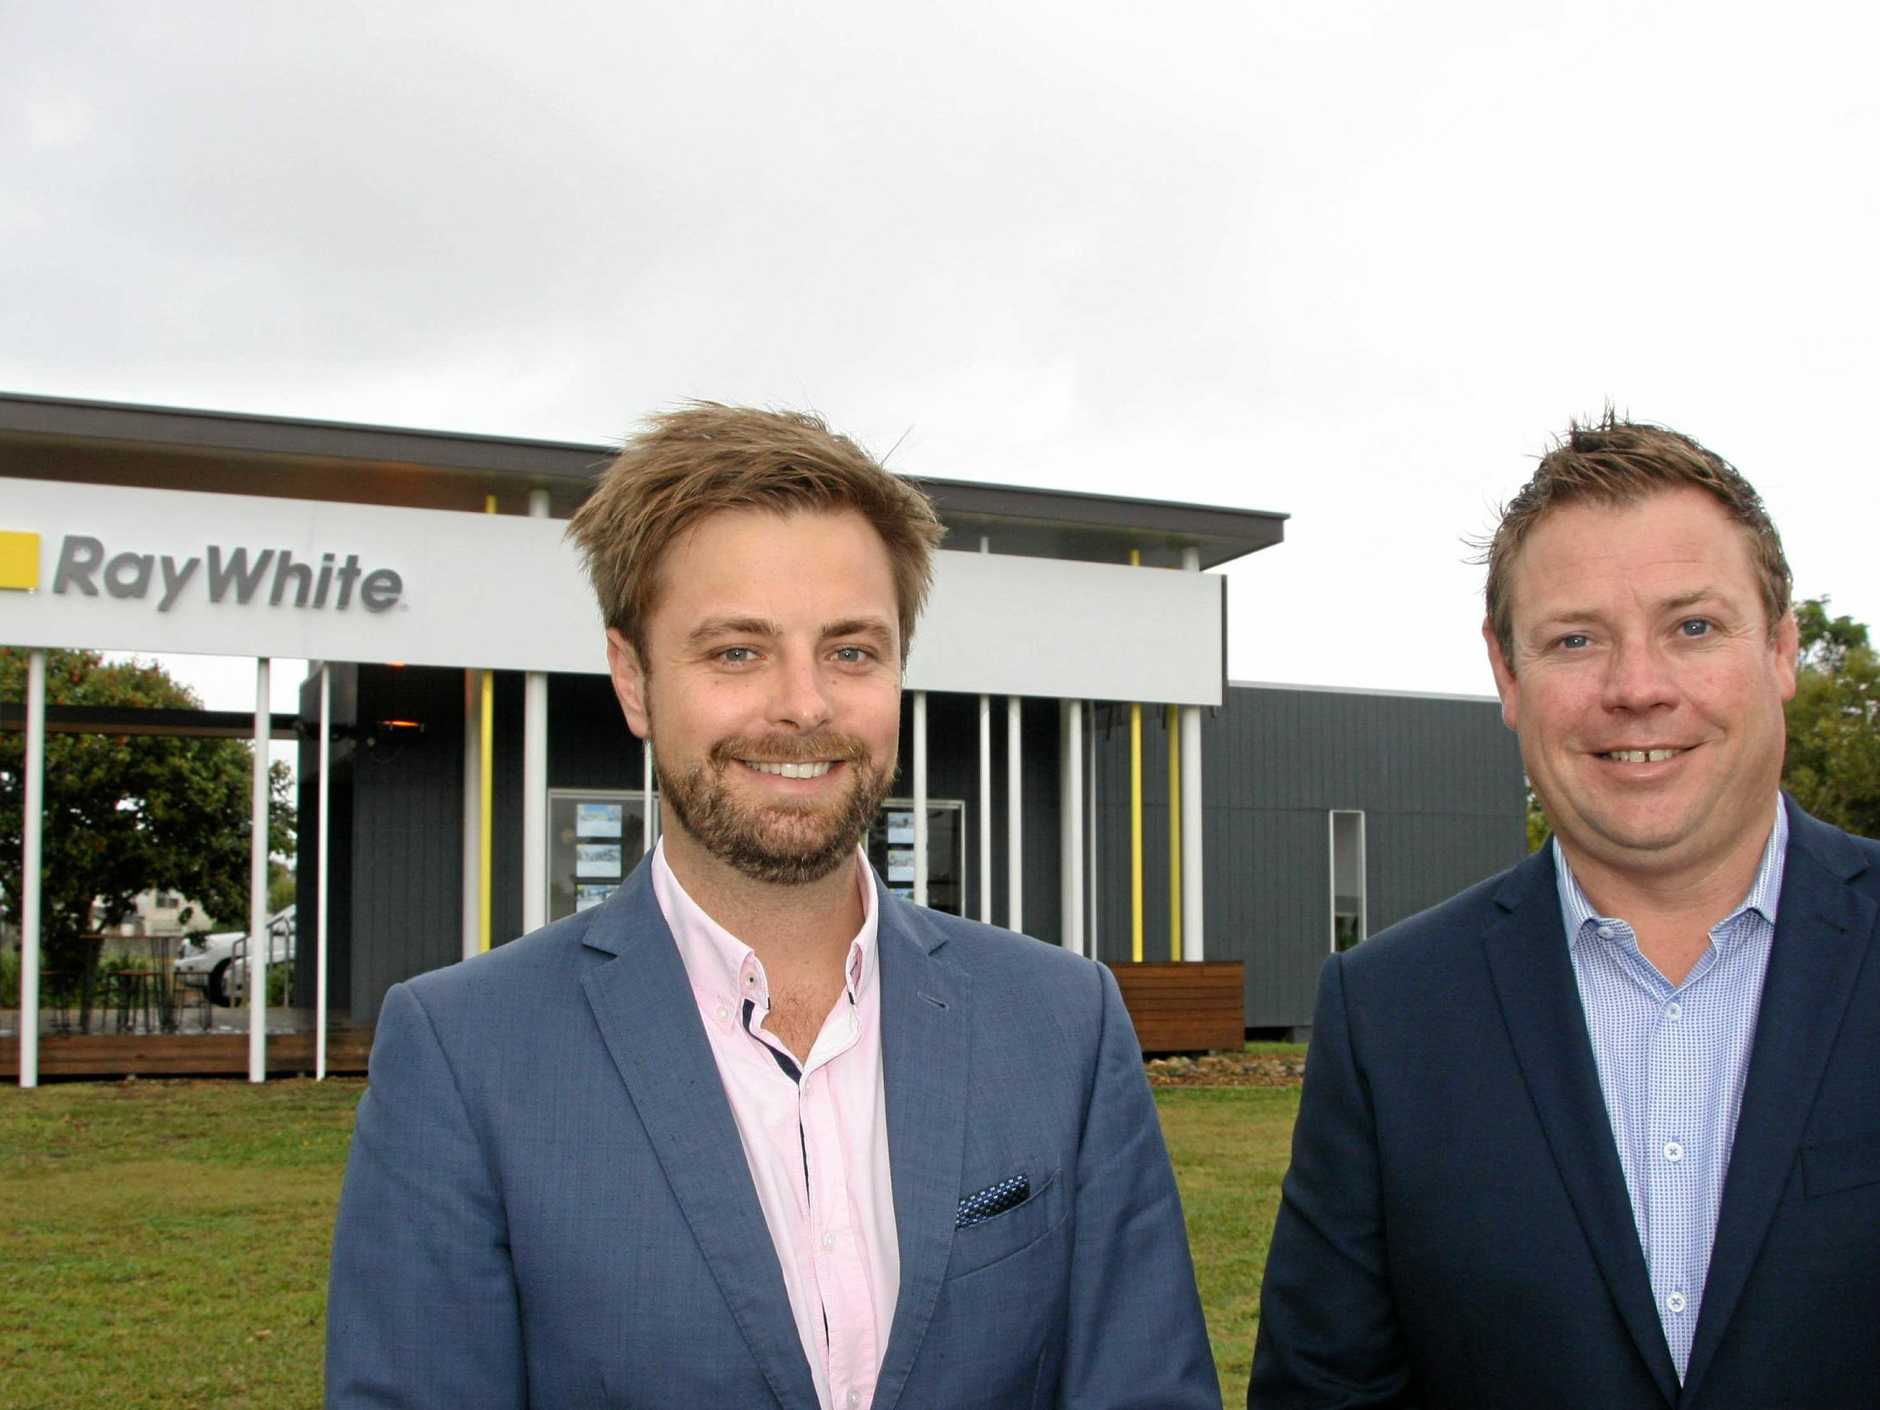 MEETING THE MARKET: James Goldsworthy and Brent Higgins at their new Ray White Kawana office at Birtinya.